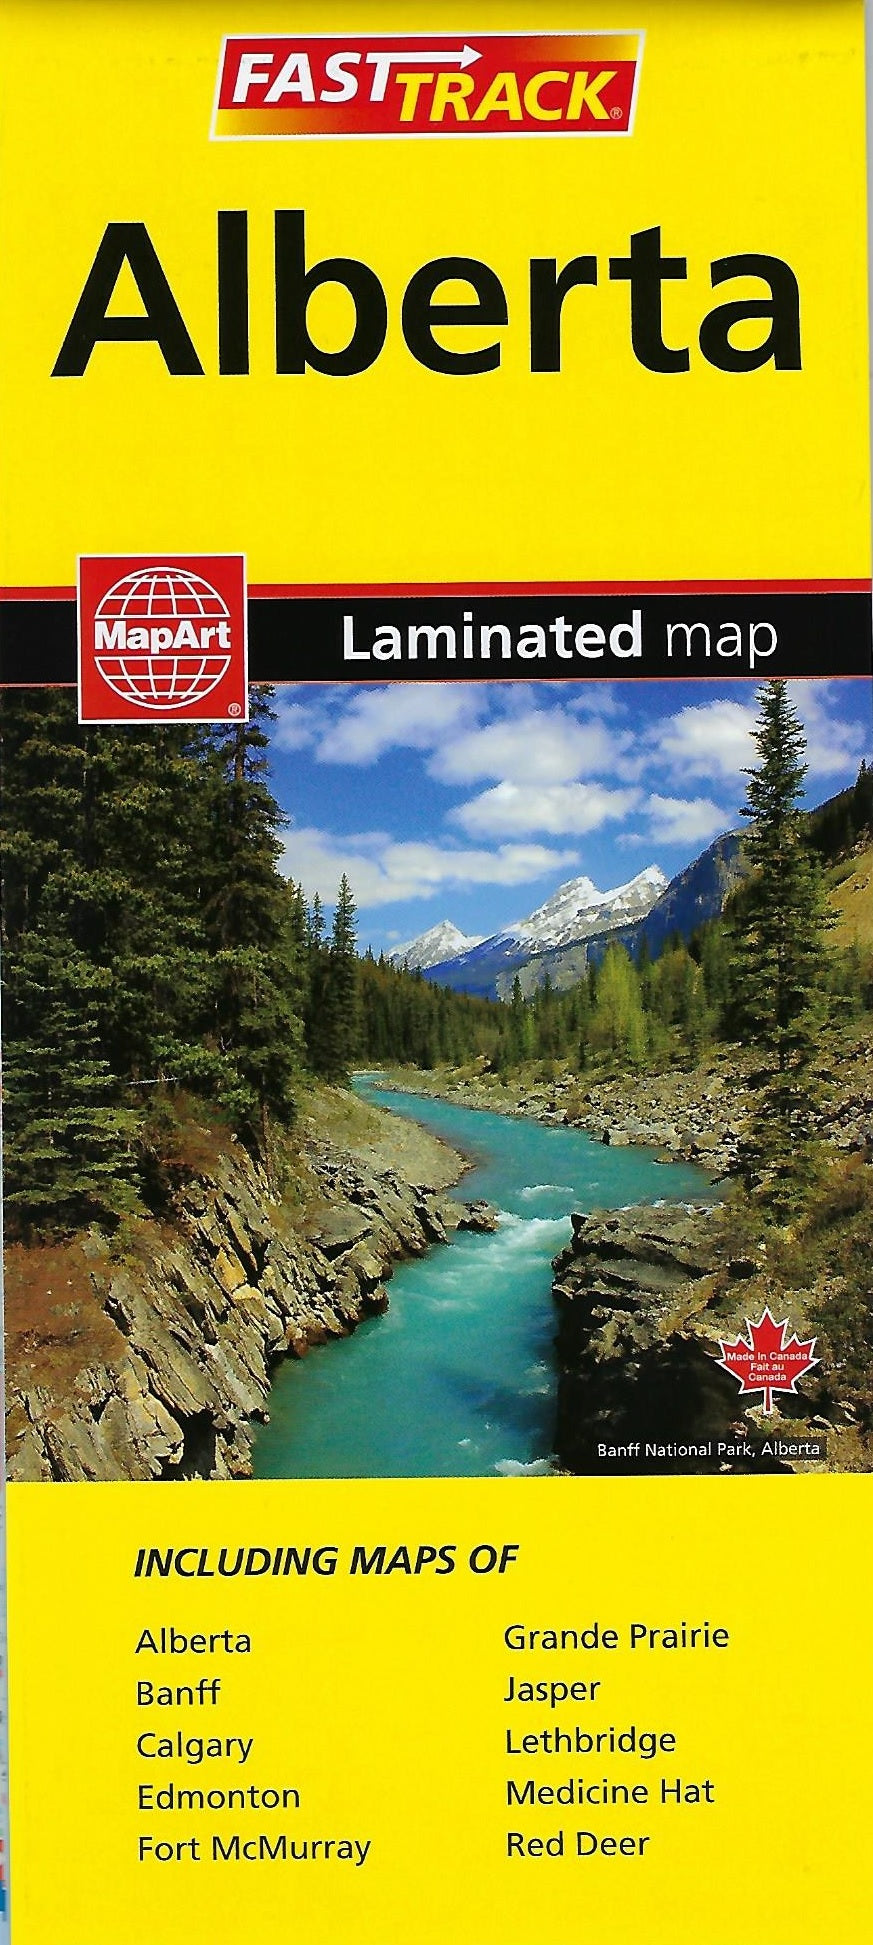 Alberta Fast Track Laminated MapArt Map